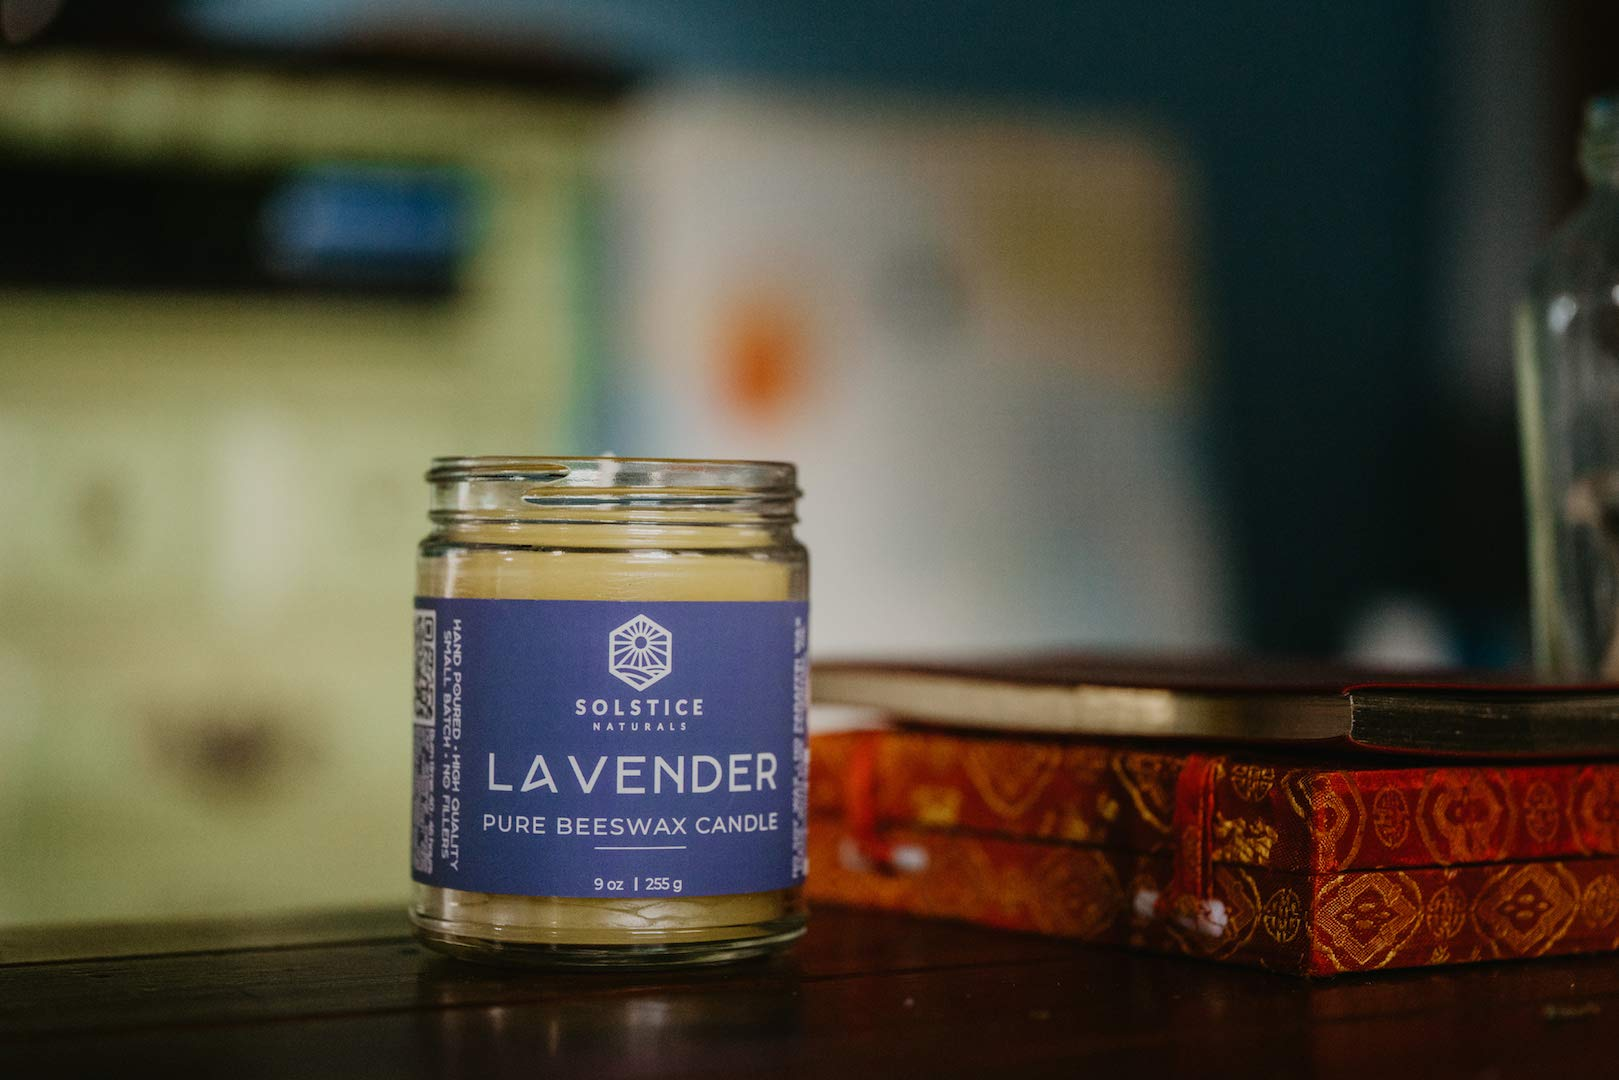 Lavender Scented All Natural 100% Pure Beeswax Aromatherapy Candle Made with Essential Oil, 9 oz - Great for Home Bathroom Living Room Office Study Yoga Spa by Solstice Naturals (Image #7)